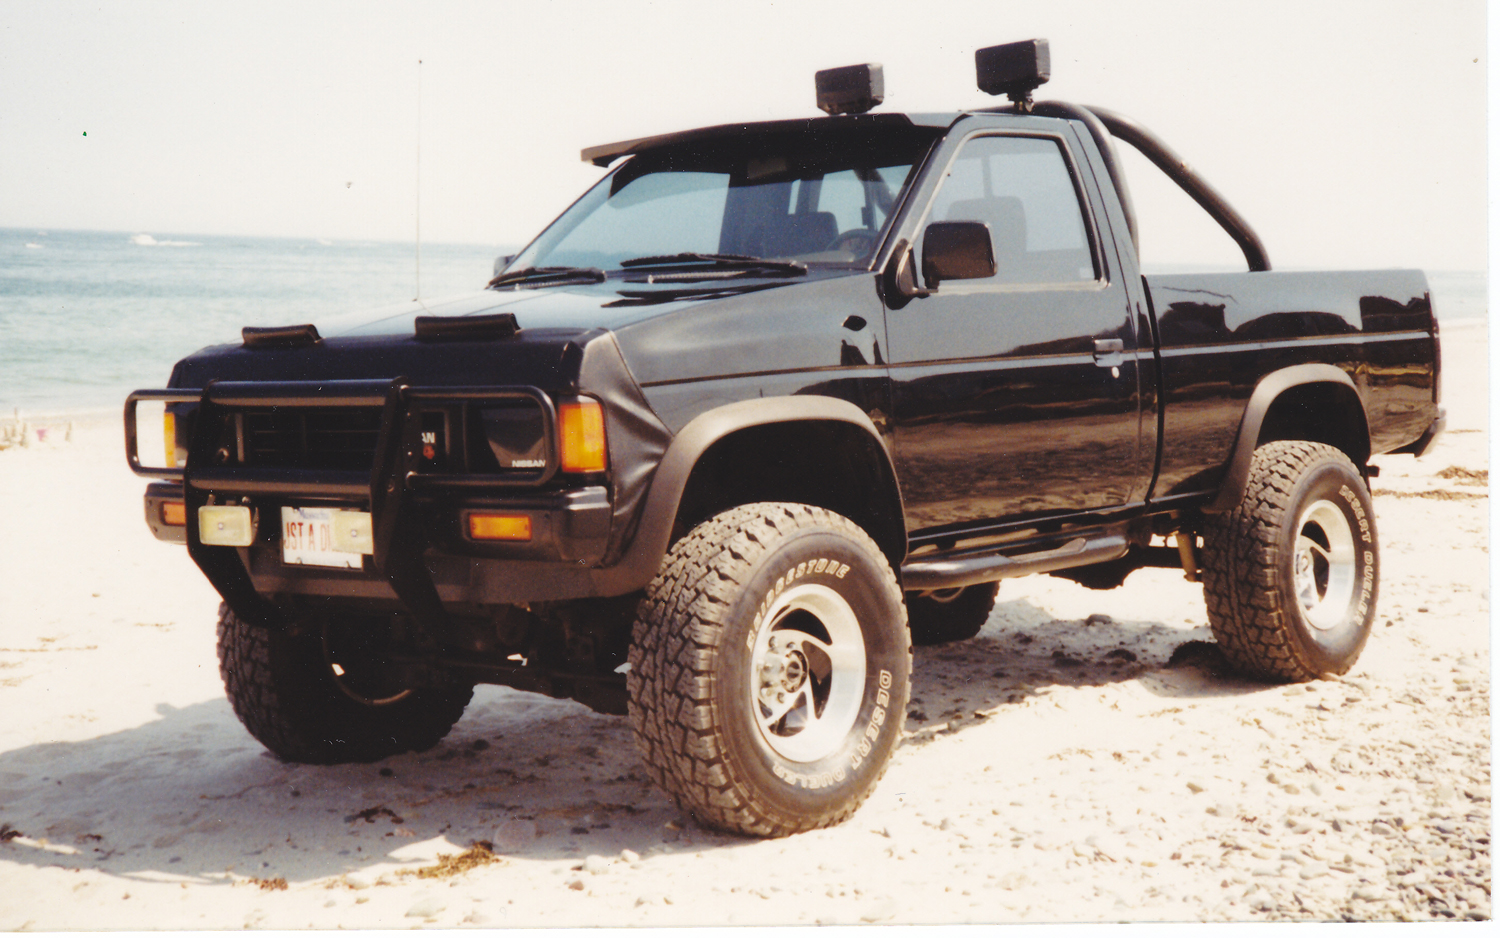 Vehicle Dimension Domestic Frame Vf also B July as well Tr Z B Pro Street Chevy Pickup Bfront Side View moreover Image further Gxtvep. on 1987 mazda pick up